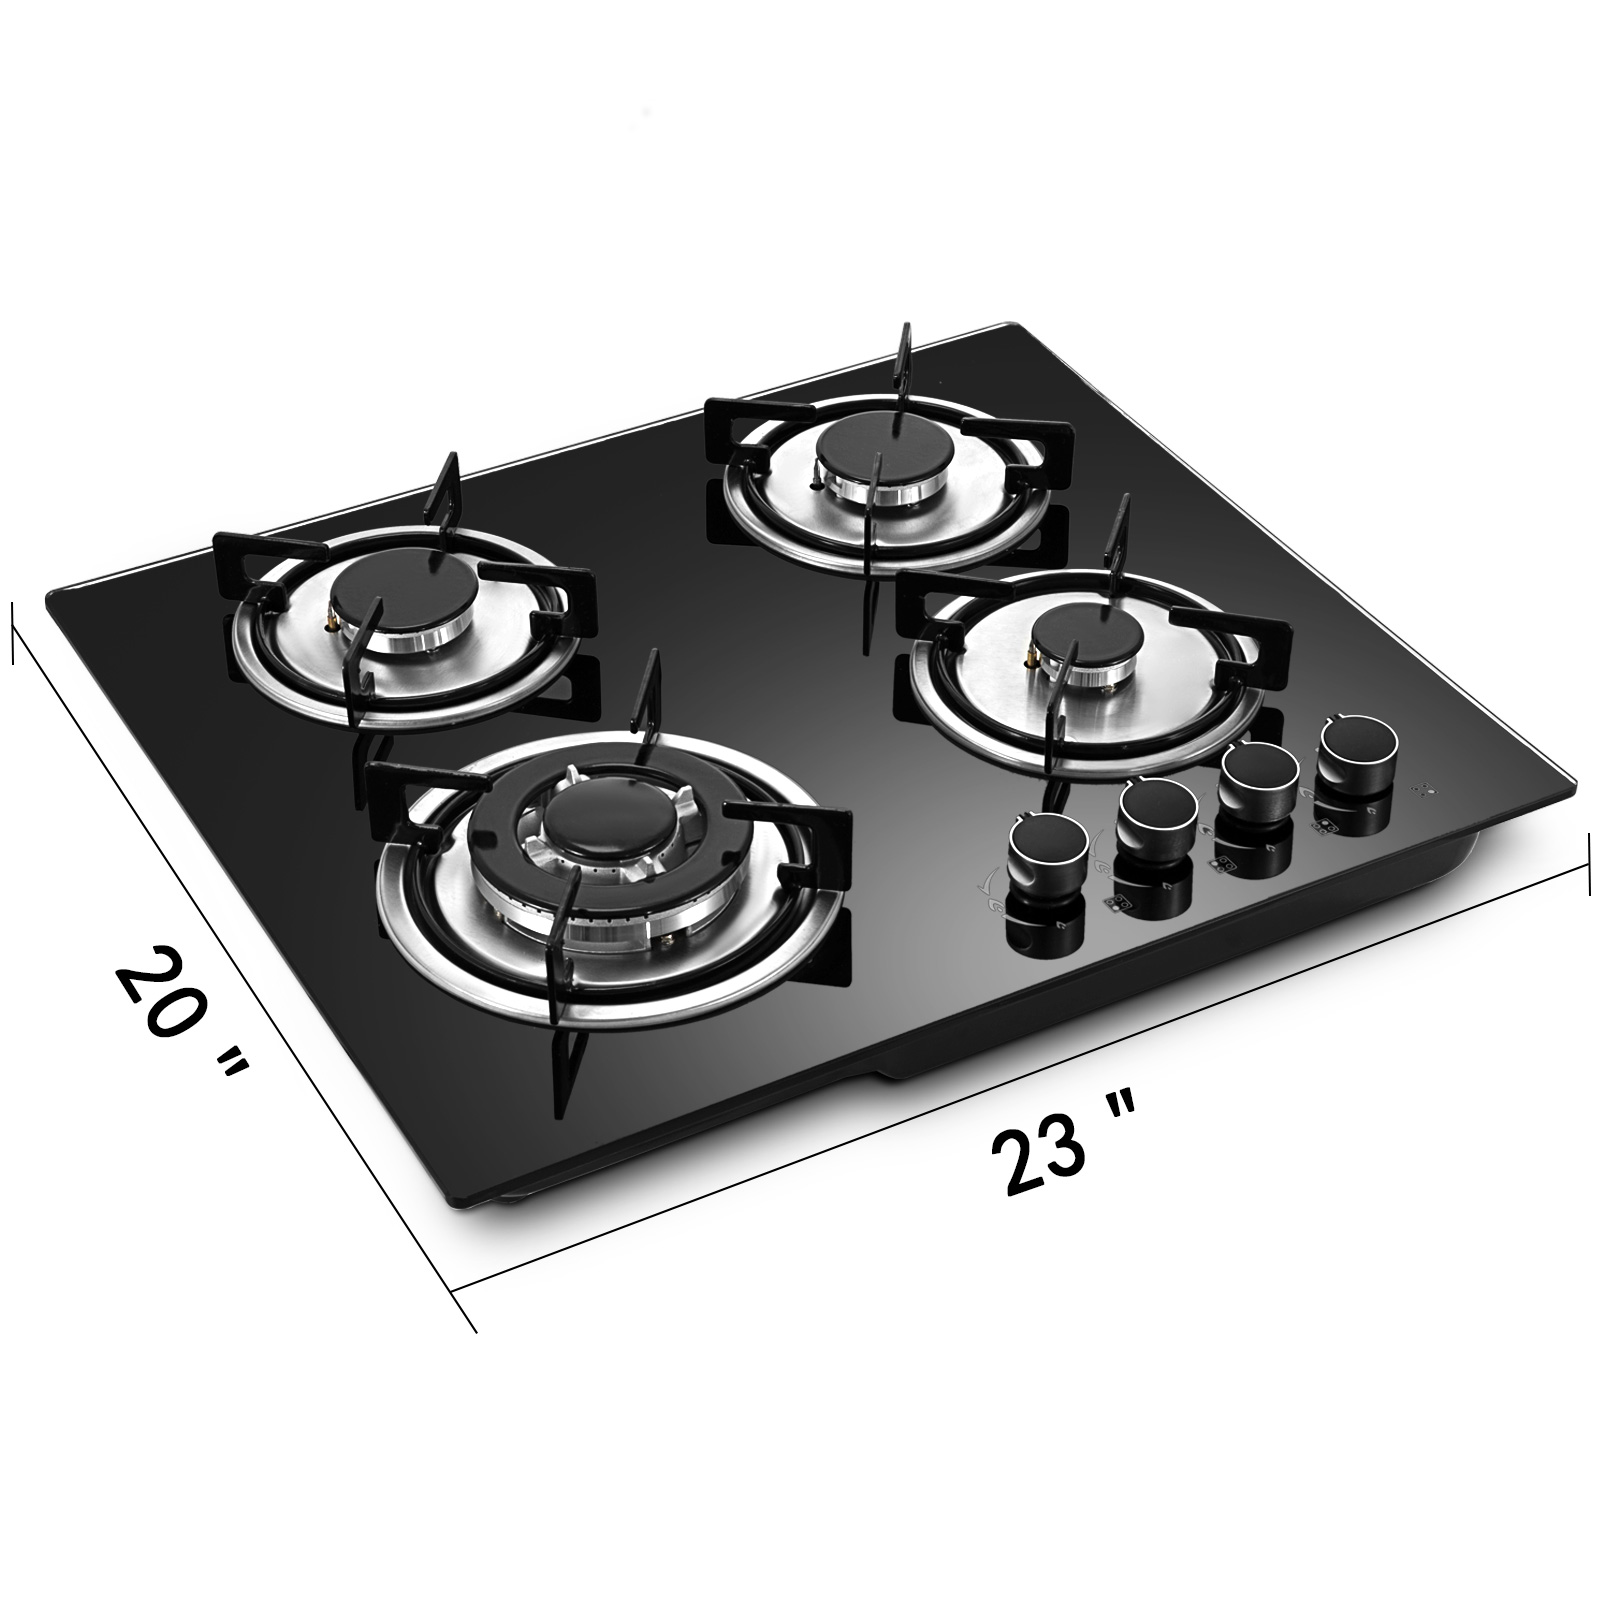 Tempered-Glass-4-Burners-Stove-Gas-Cooktop-iron-grates-LPG-amp-LNG-Gas-St-Steel thumbnail 8